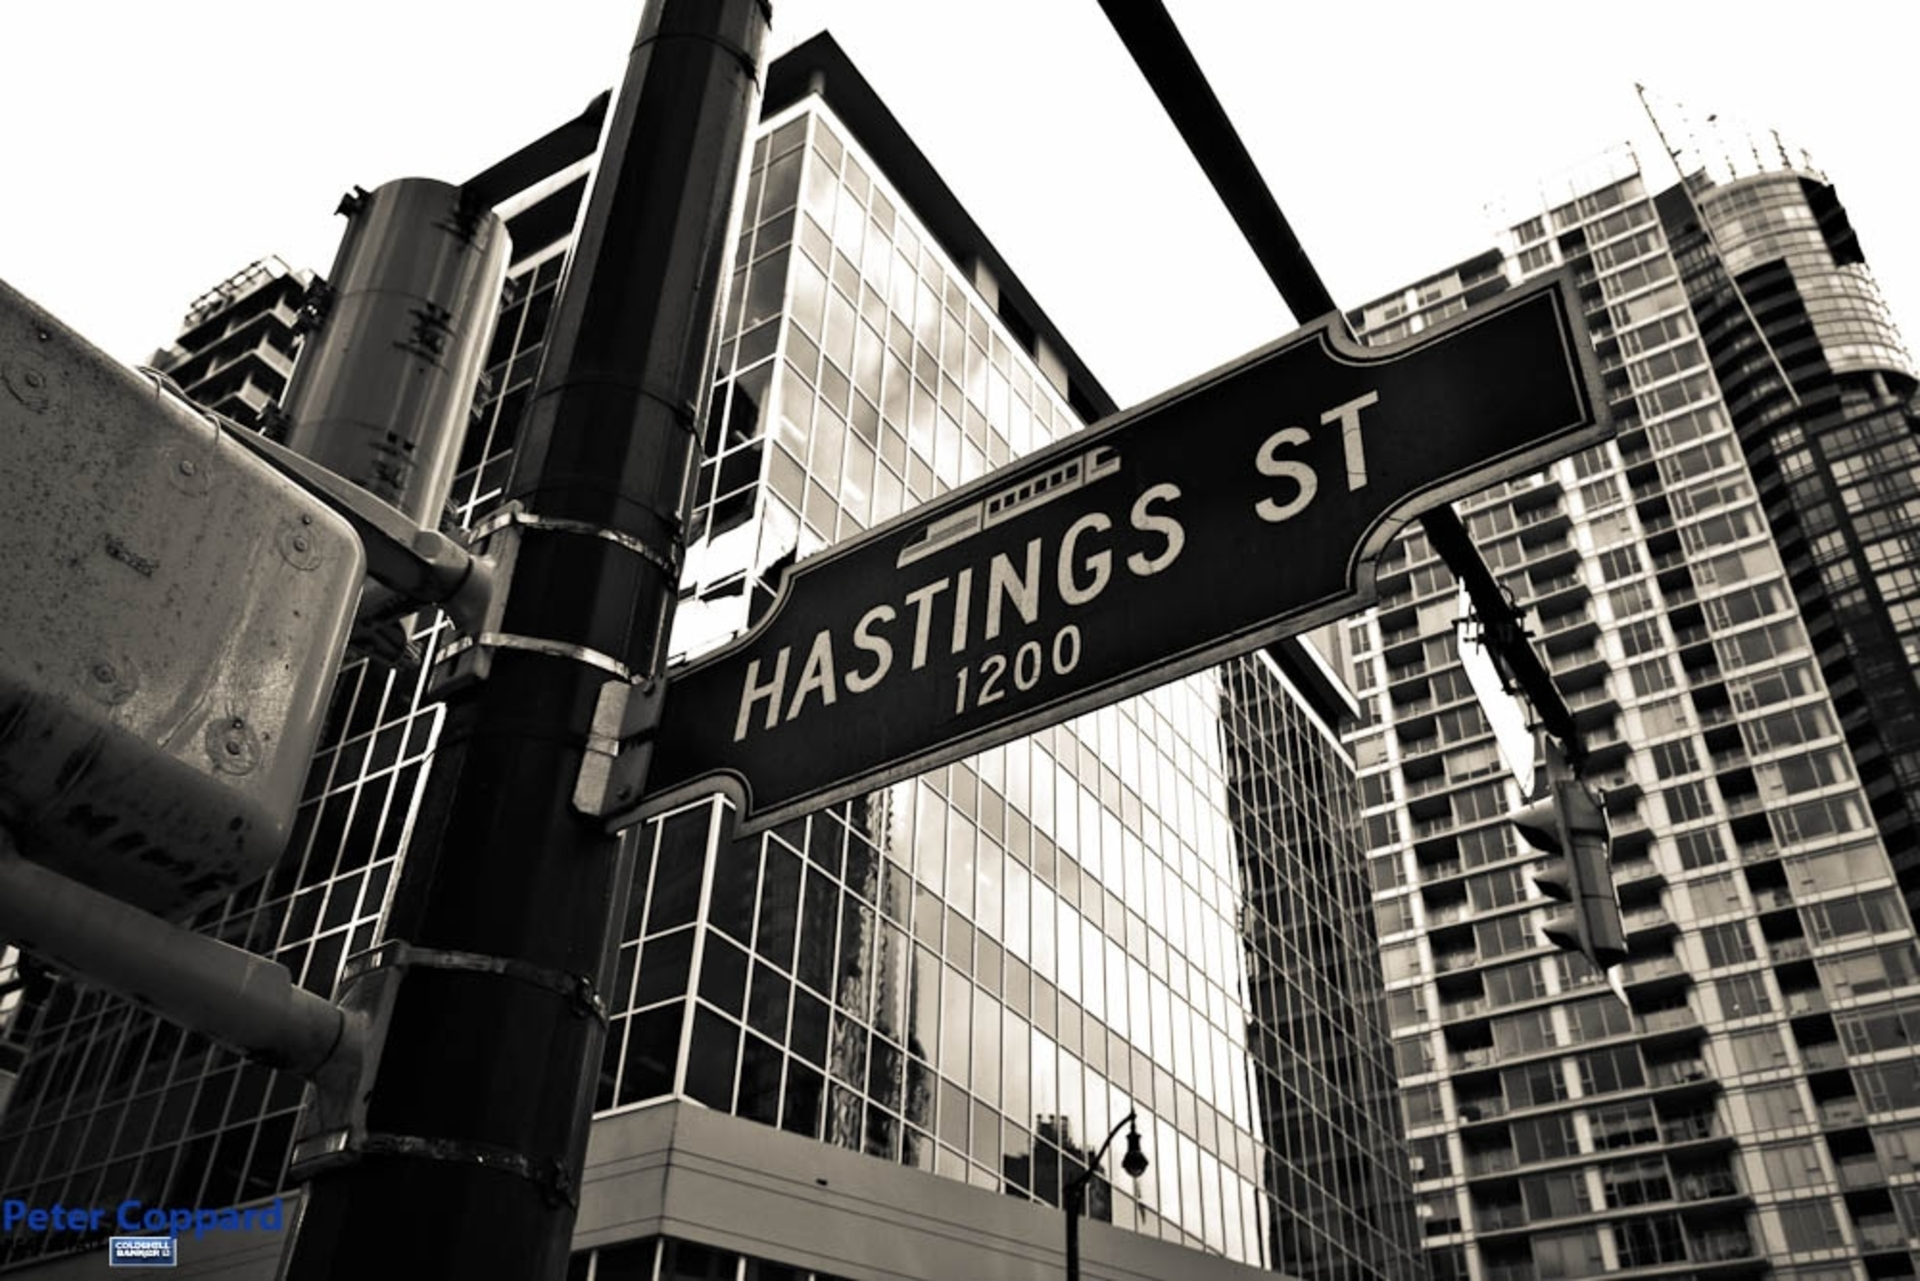 Hastings Street at 3002 - 1205 West Hastings, Coal Harbour, Vancouver West